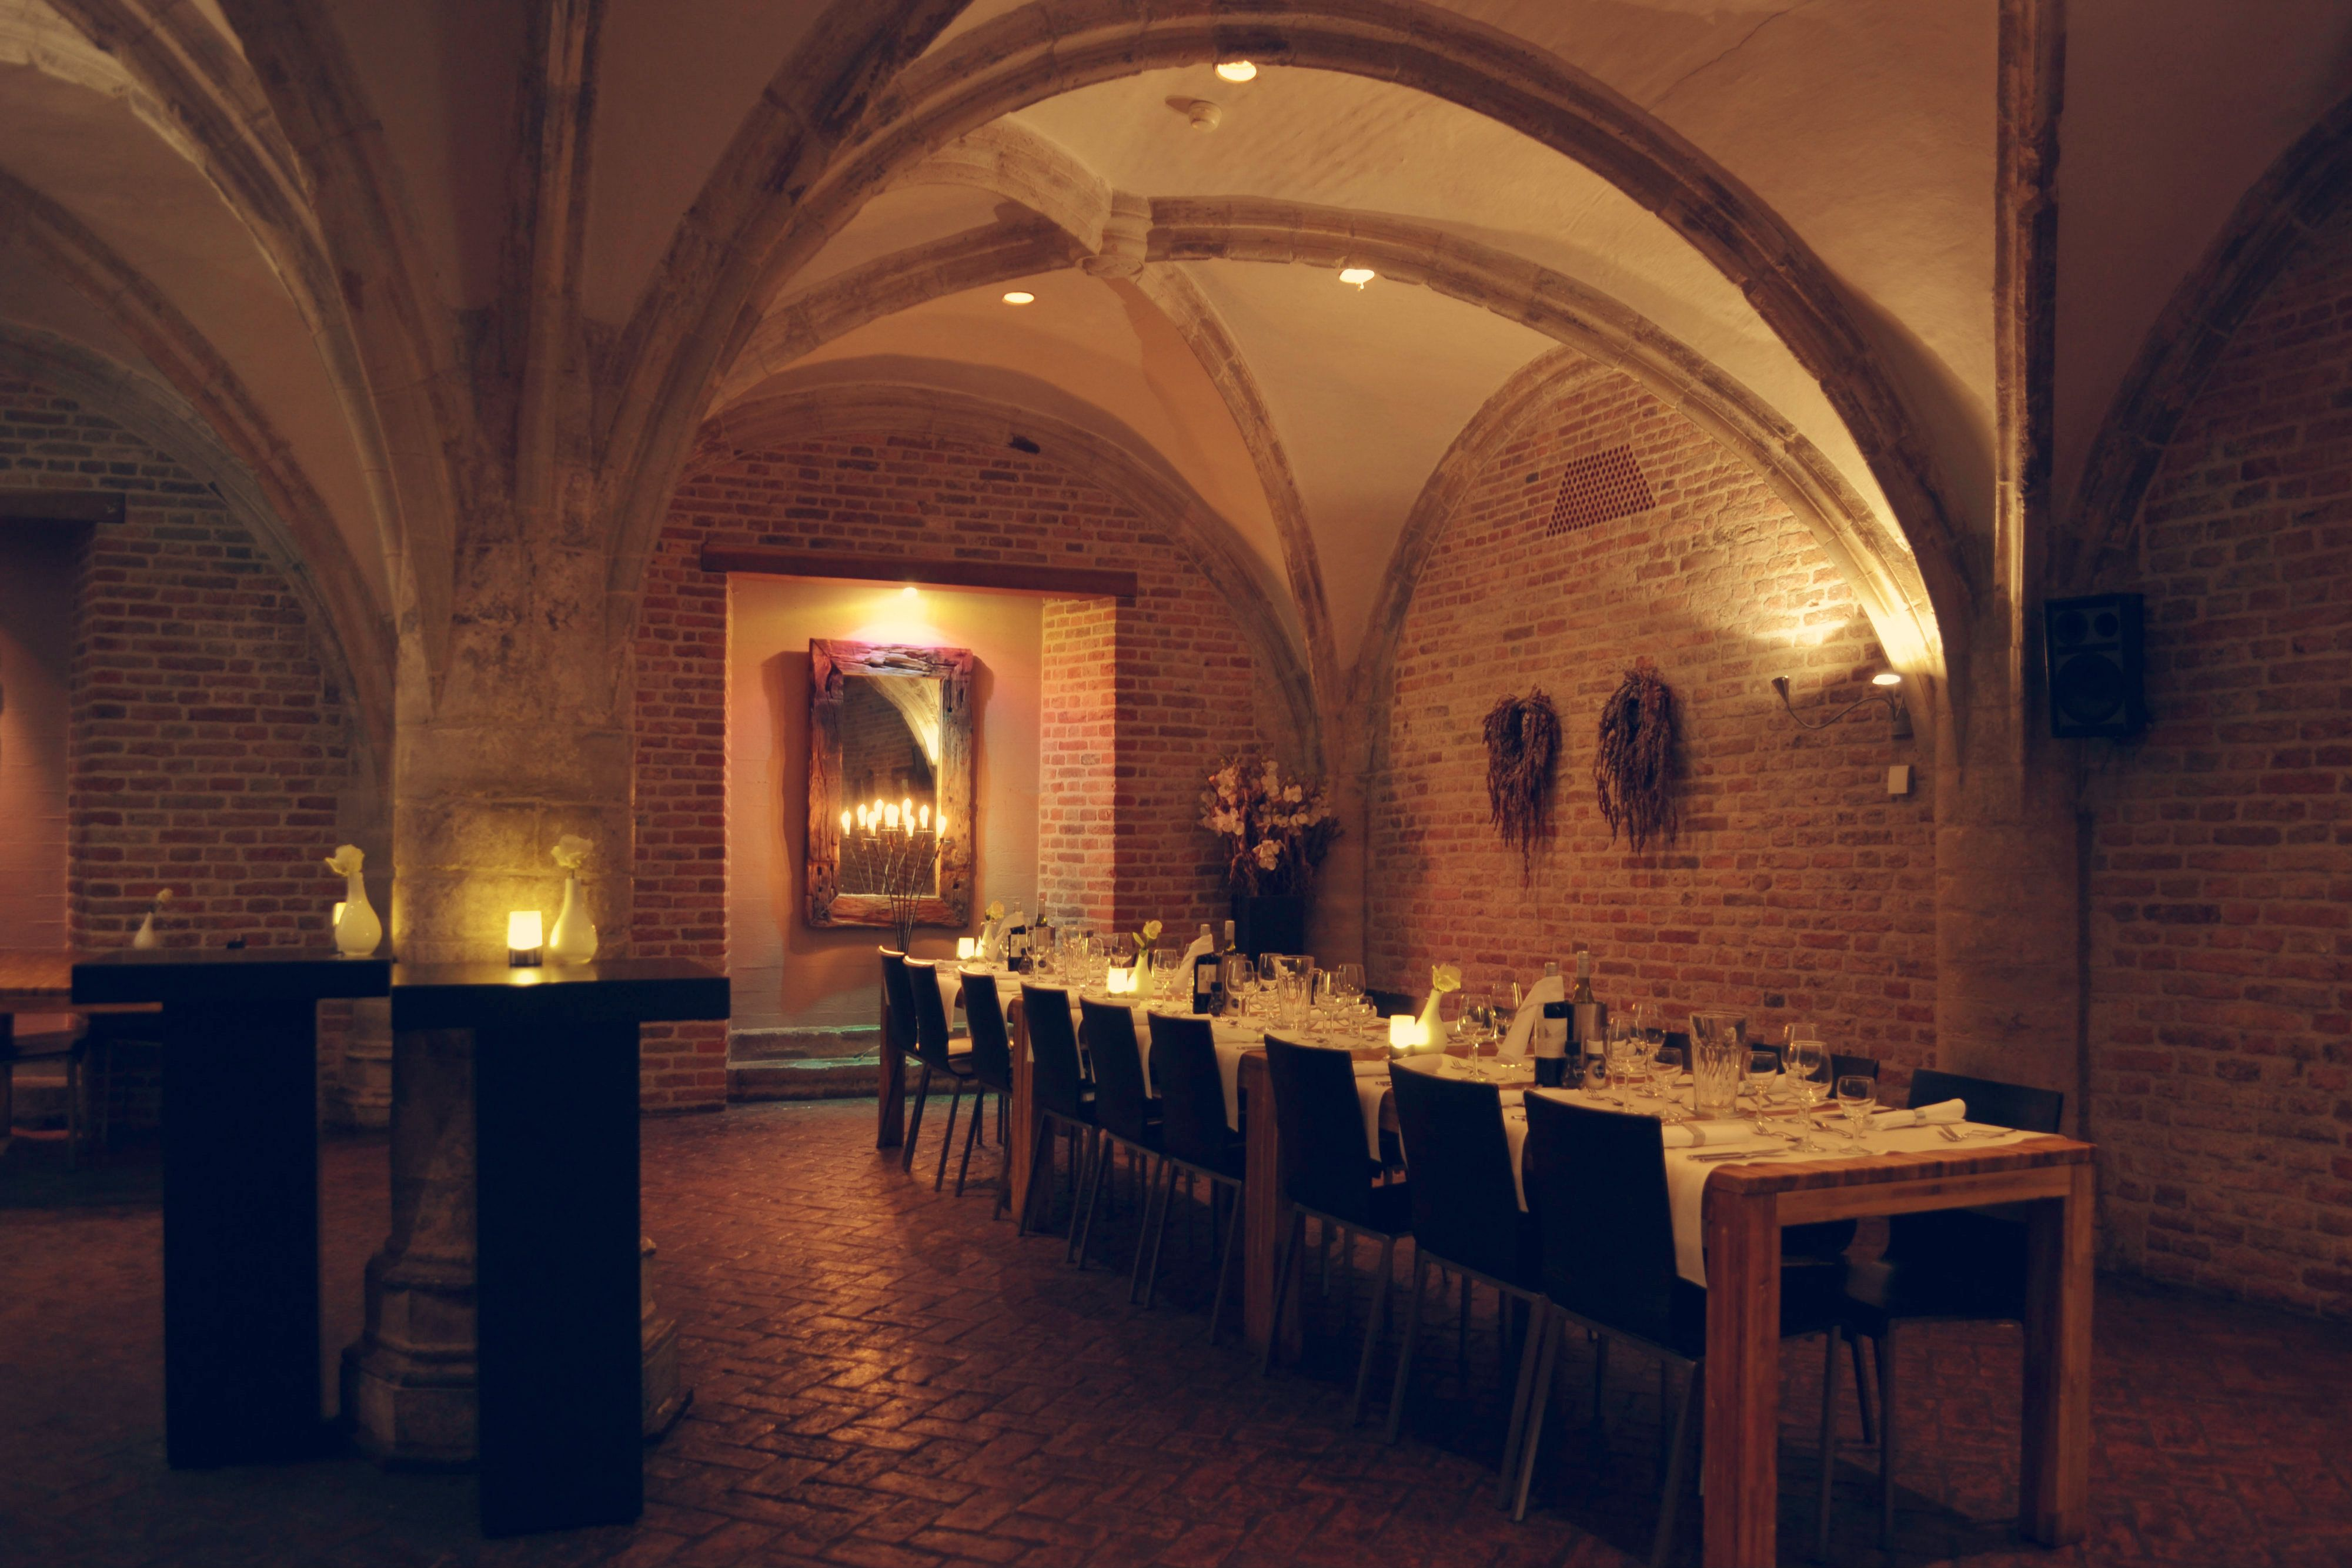 Romantic wedding venue suitable for a sit down dinner and